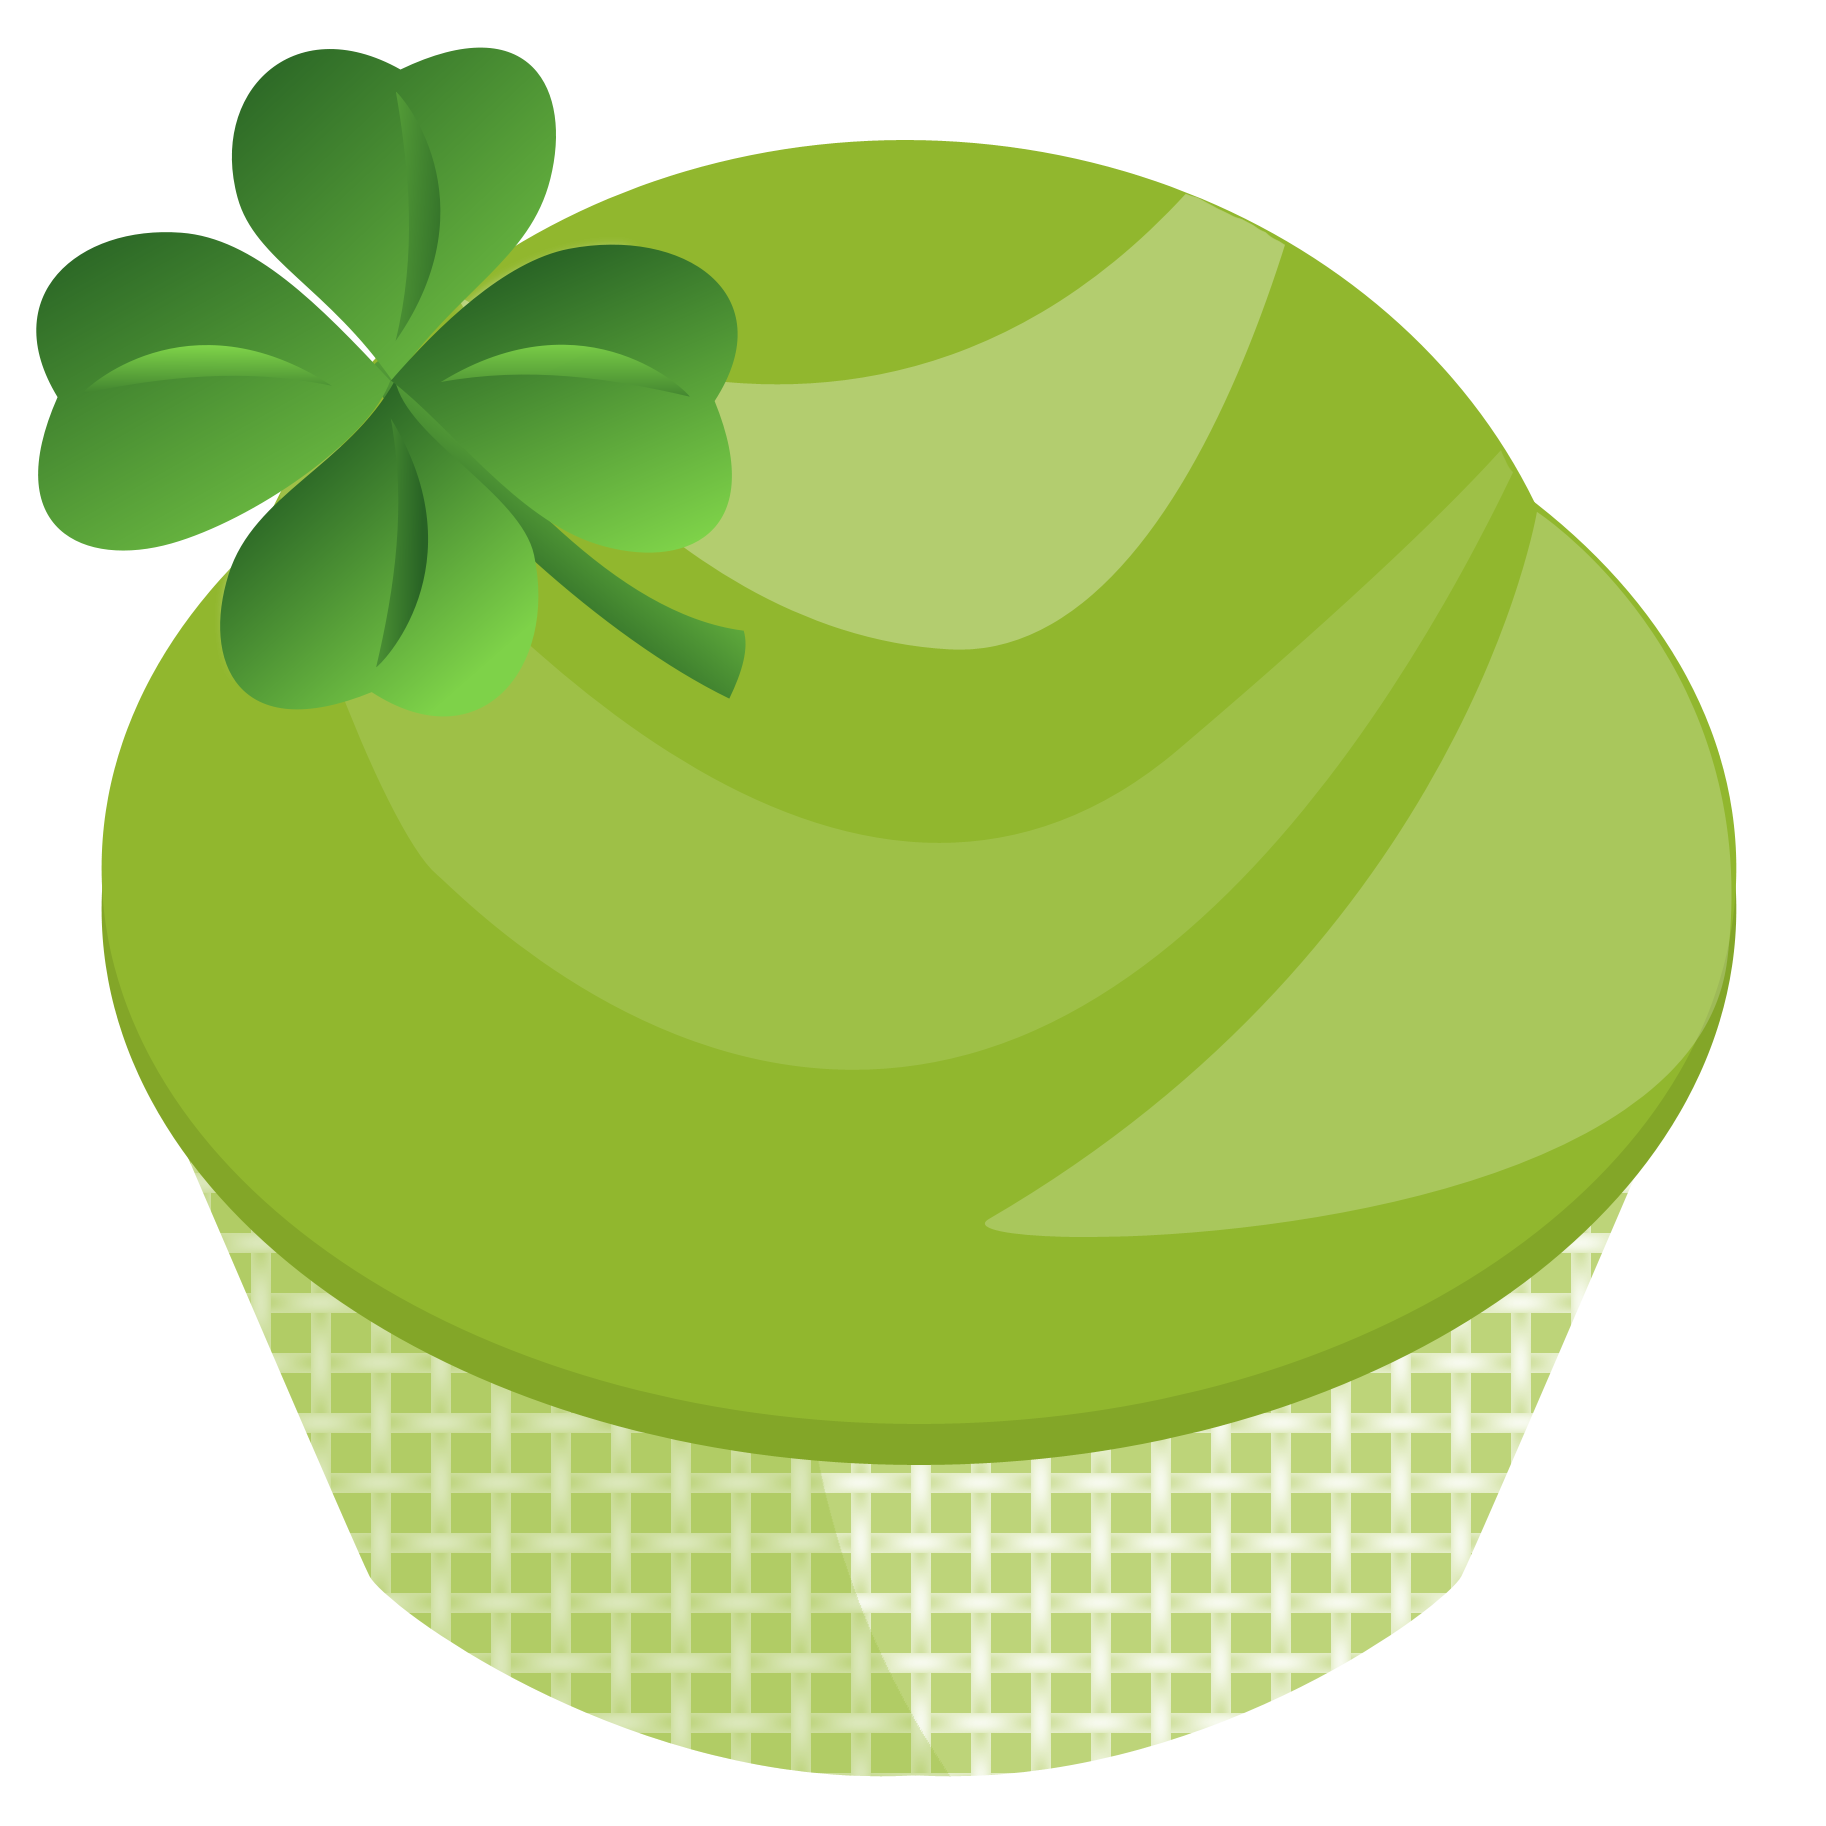 Green Day clipart st patricks day Day Clipart  clipart Green